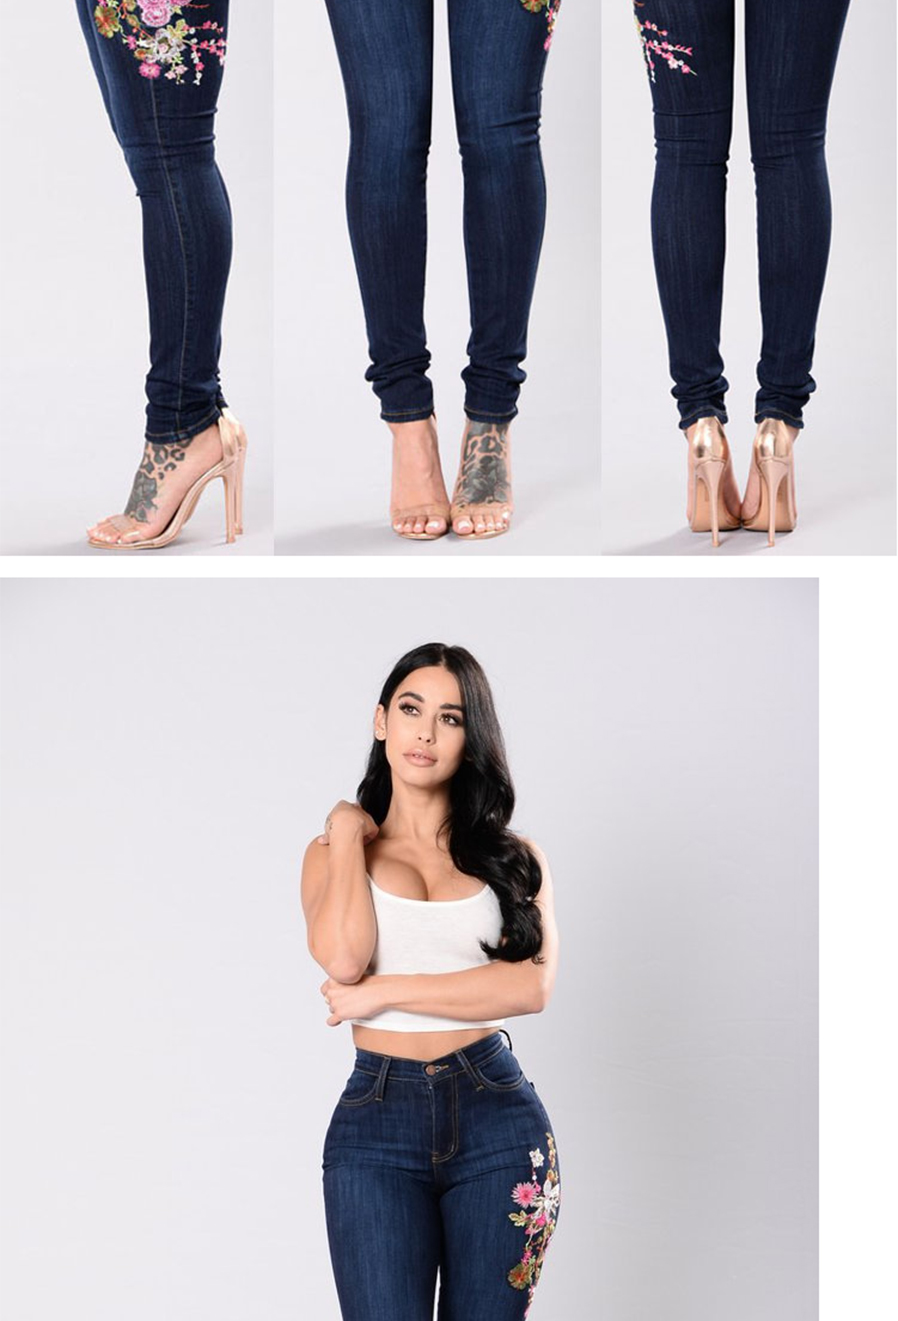 b299ee44985 Women s Fashion Embroidered Feet High-elastic Jeans Blue Holes ...